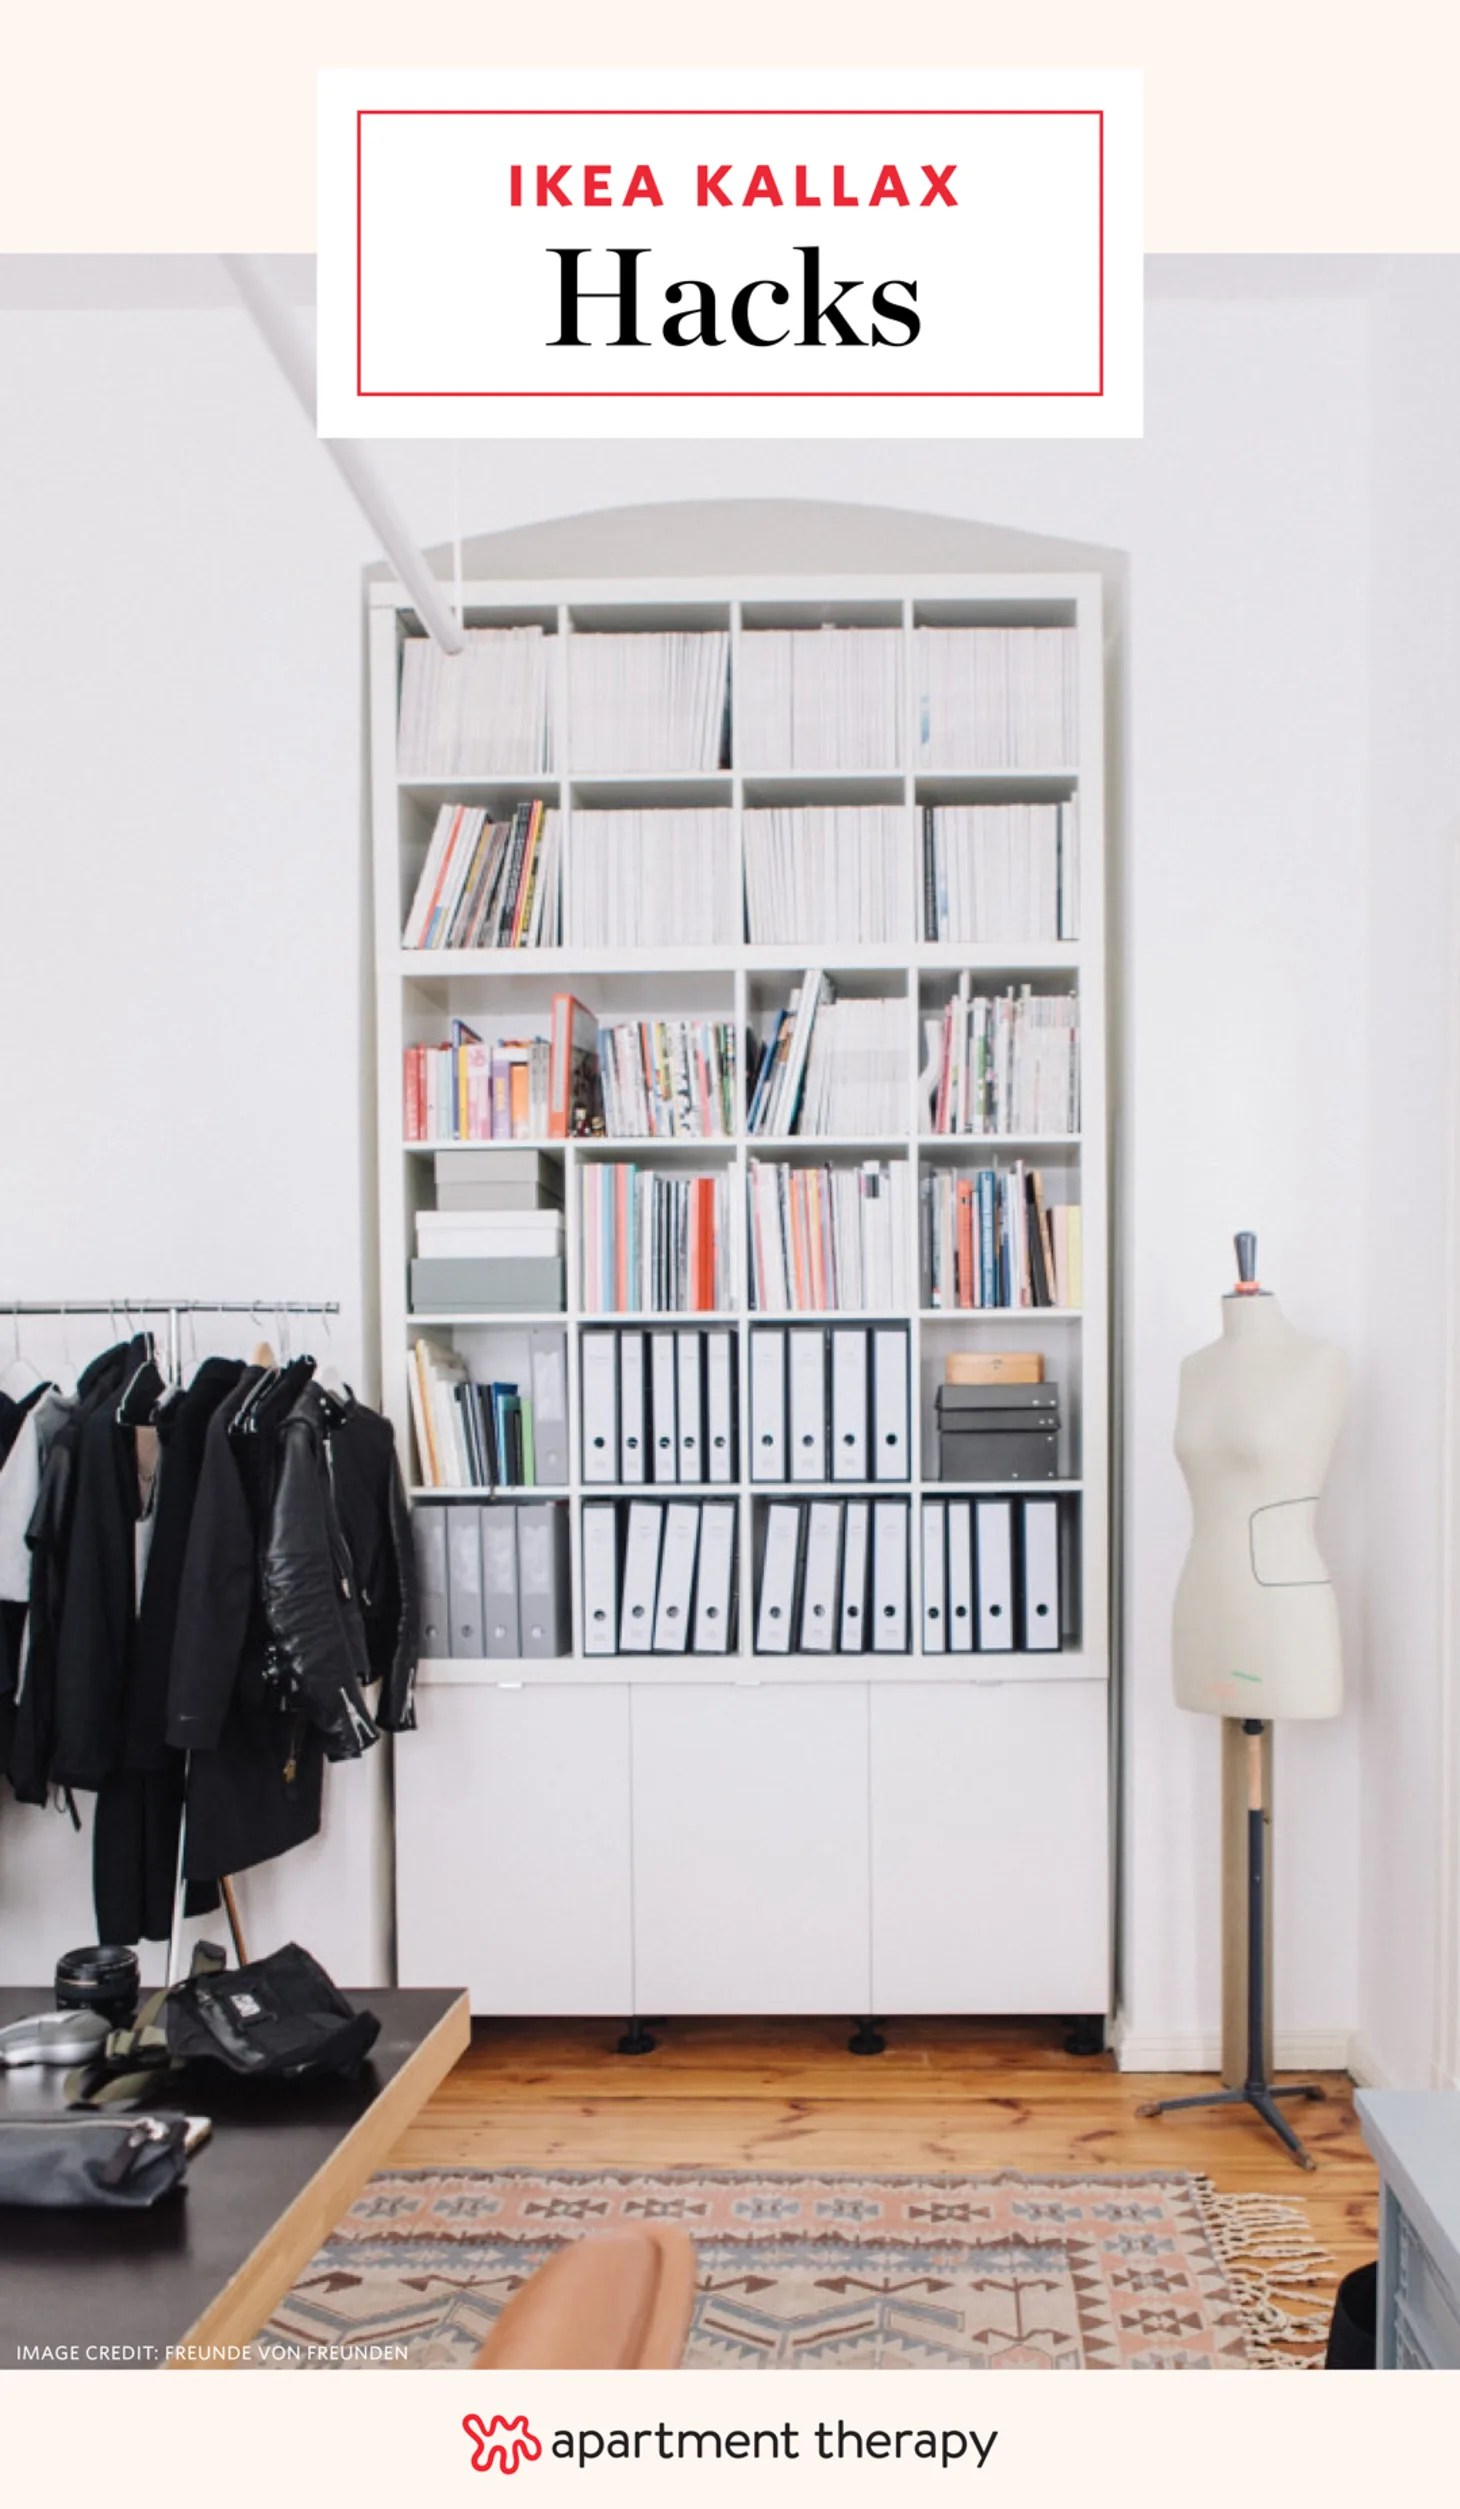 Ikea Expedit Garderobe 15 Super Smart Ways To Use The Ikea Kallax Bookcase Apartment Therapy